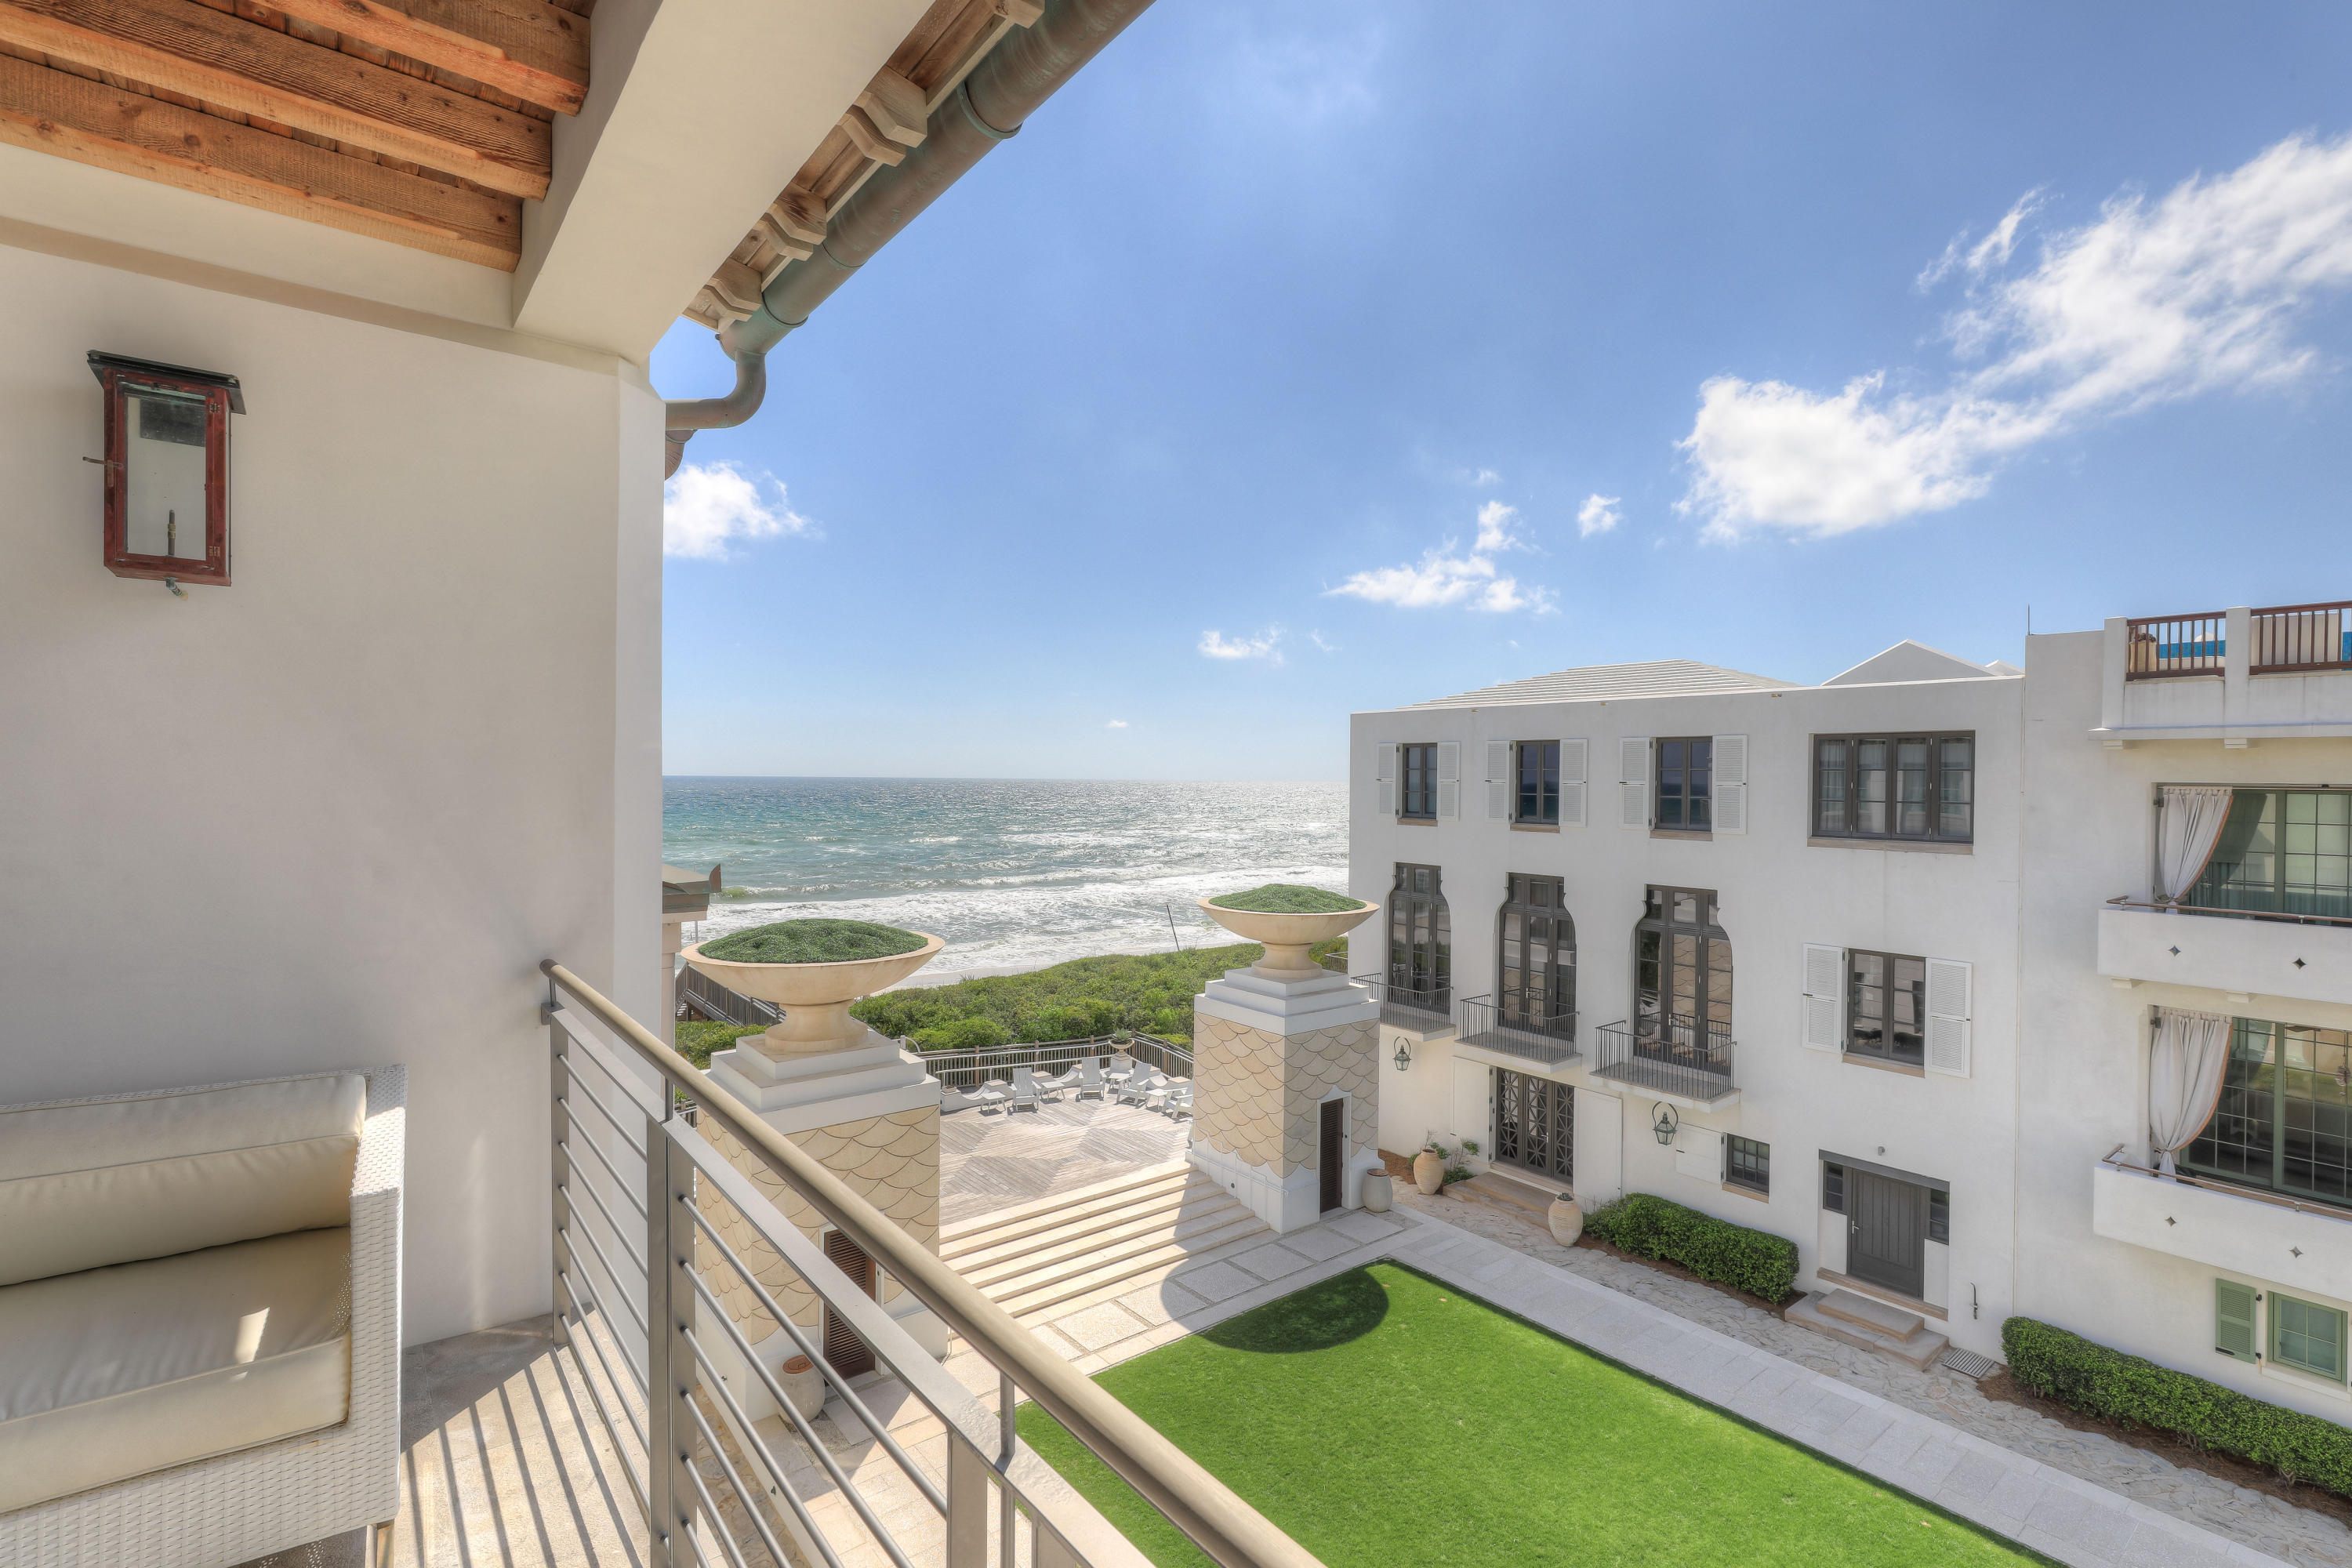 33 Sea Foam,Alys Beach,Florida 32461,4 Bedrooms Bedrooms,4 BathroomsBathrooms,Detached single family,Sea Foam,20131126143817002353000000